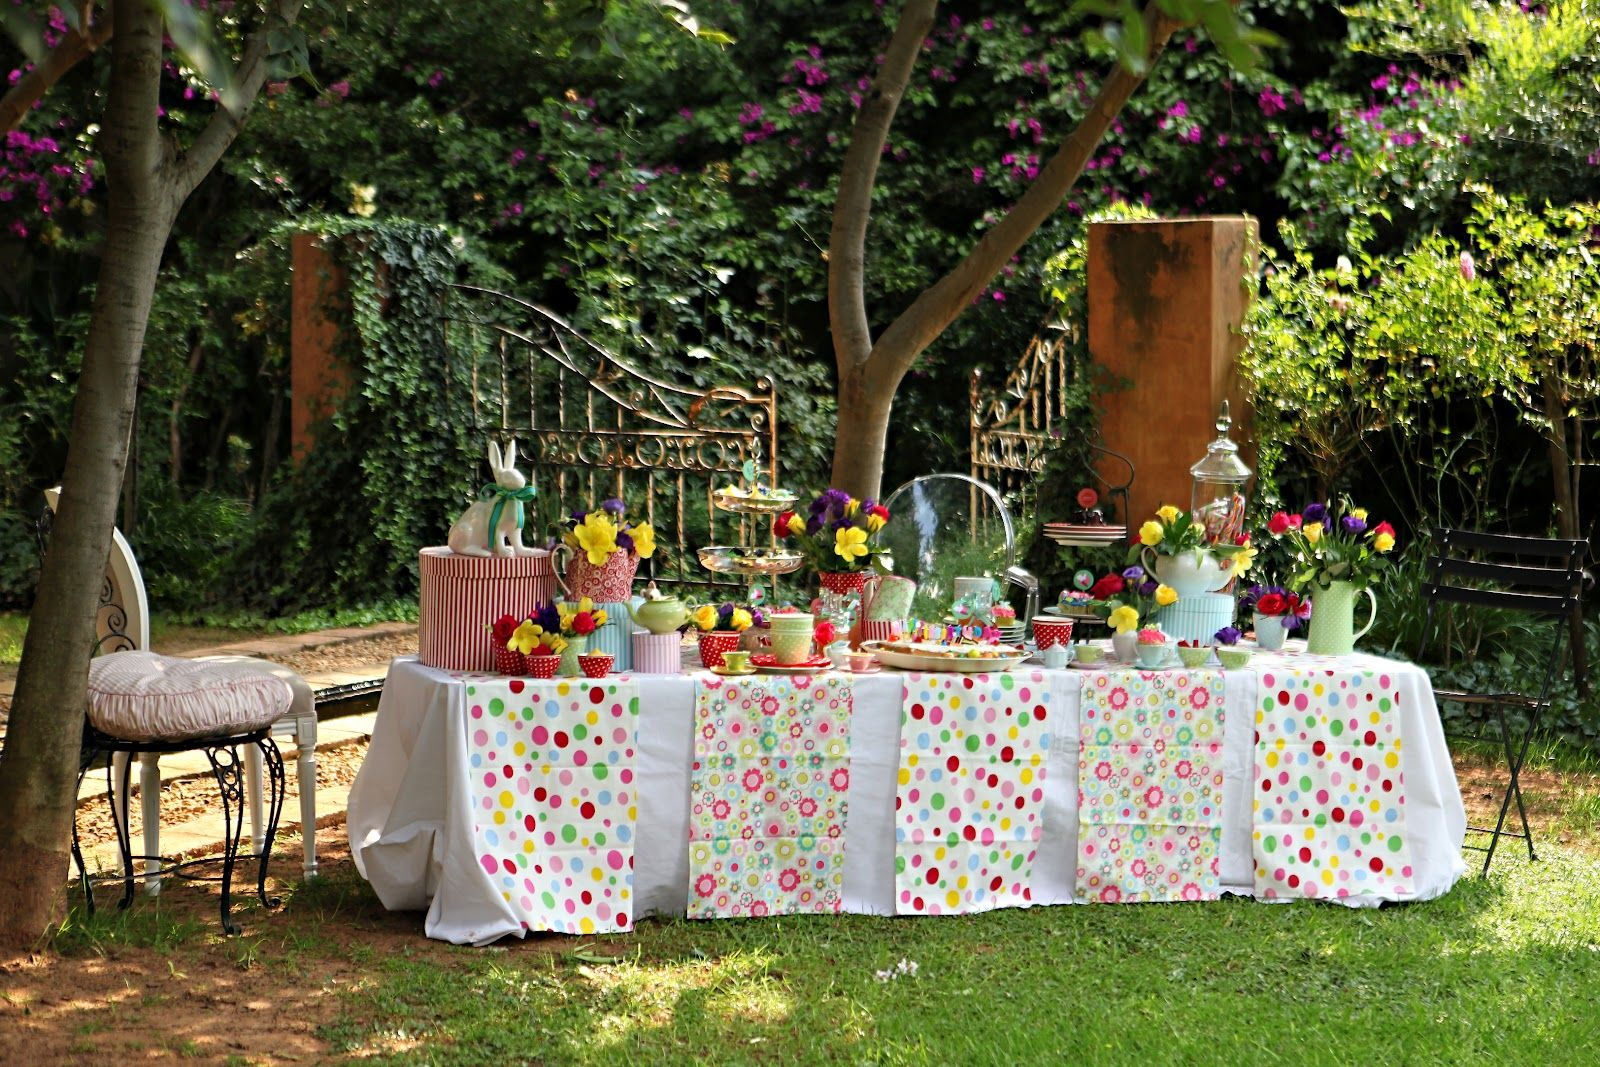 Mad hatter tea party decoration ideas - Mad Hatters Tea Party